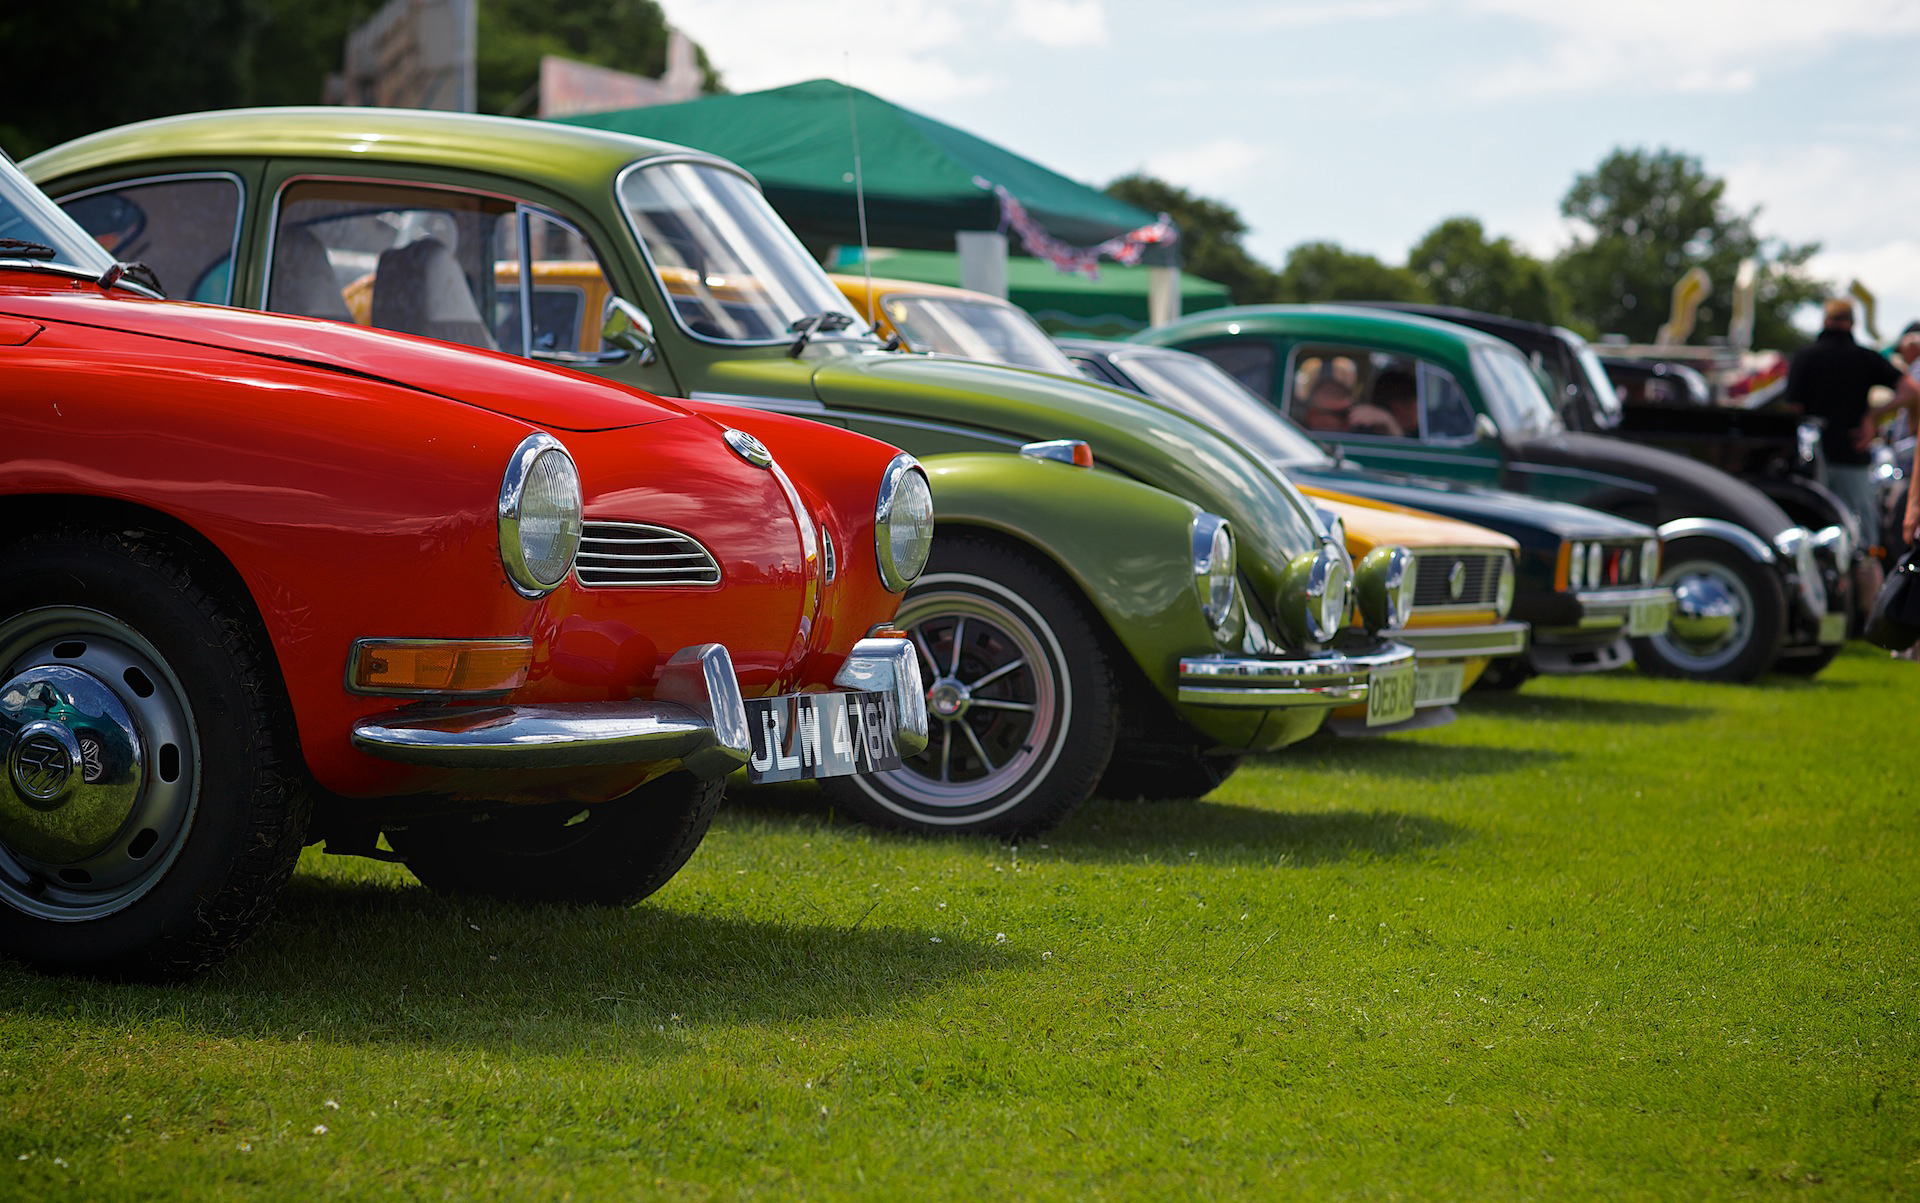 Fancy a classic car show this summer? Here are a few ideas ...